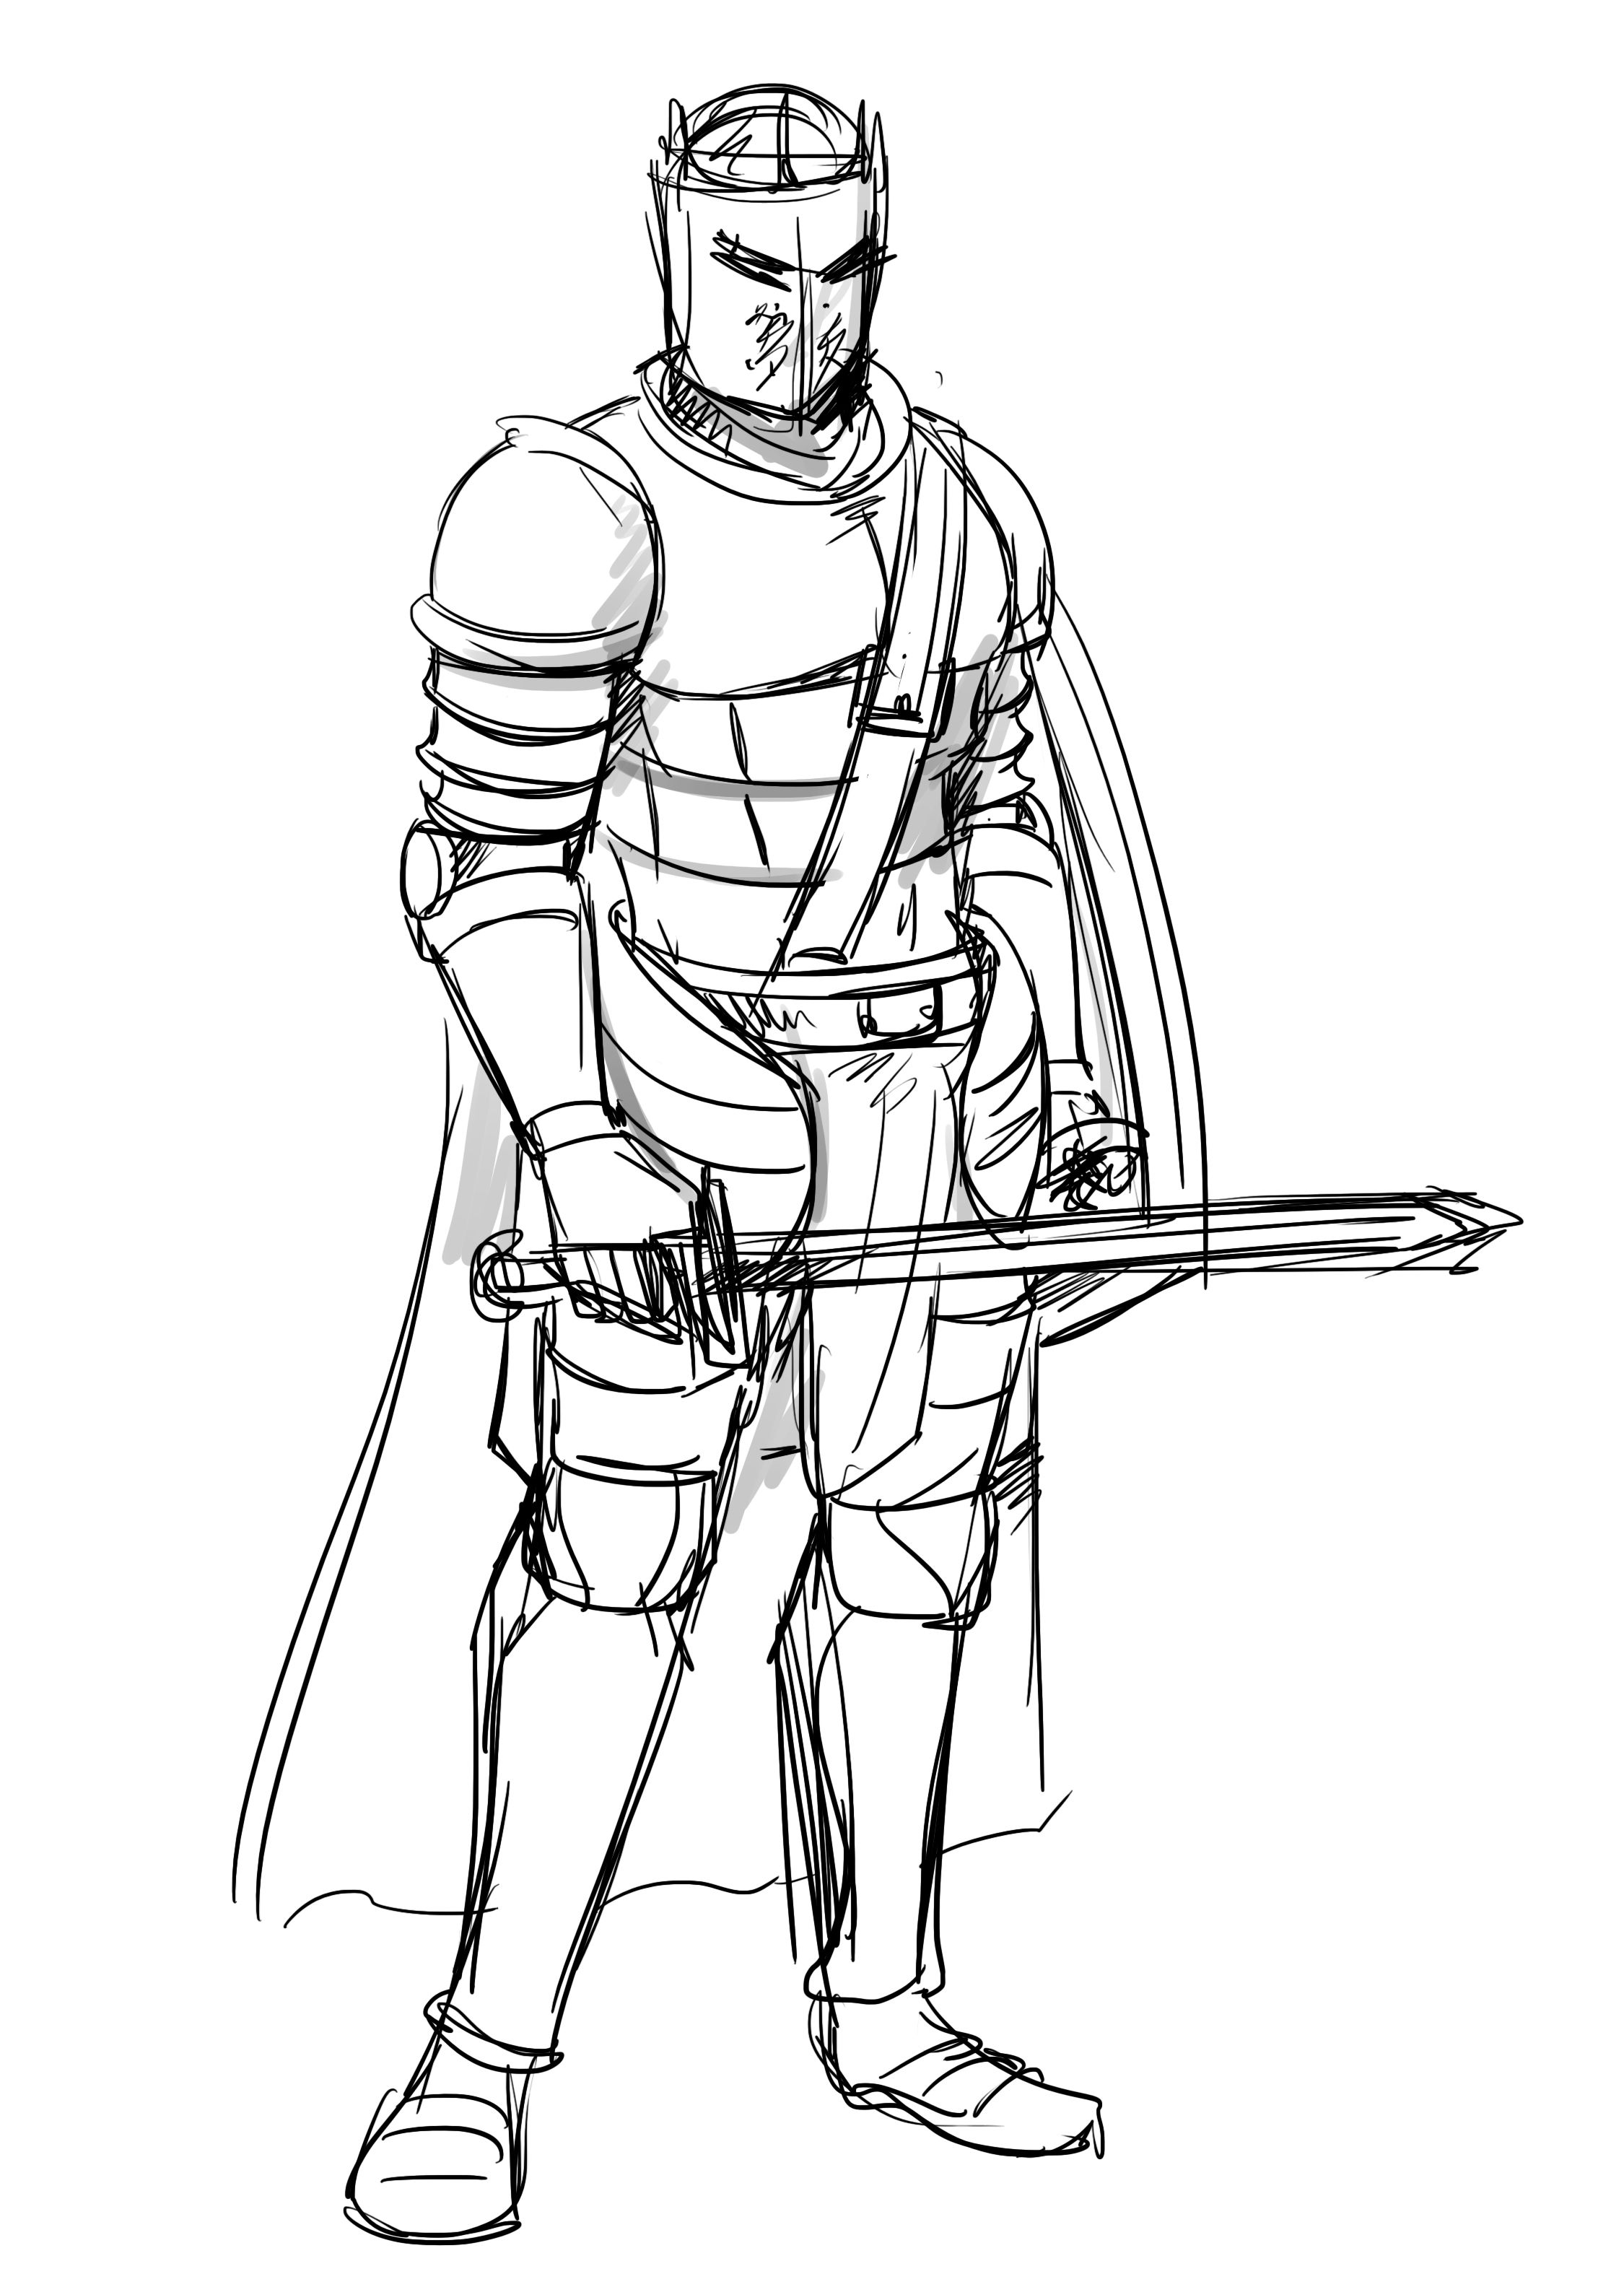 how to draw a knight helmet step by step medieval helmet drawing at getdrawings free download step helmet to by a draw step how knight